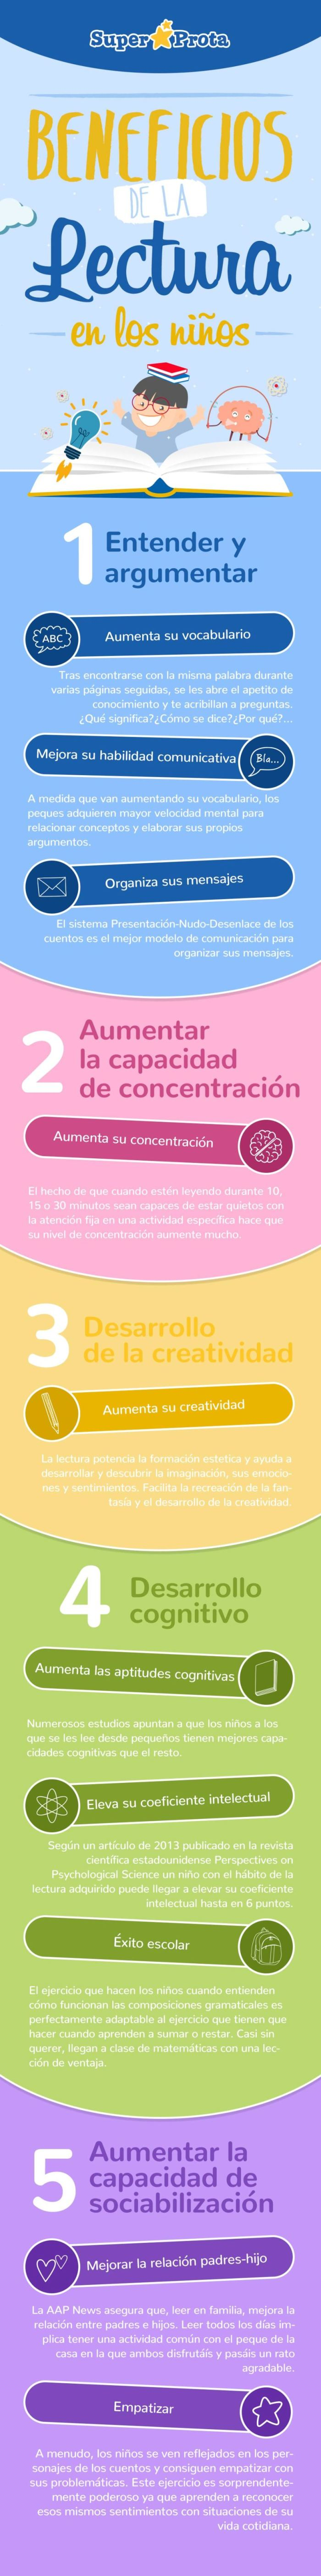 5BeneficiosLecturaNiños-Infografía-BlogGesvin